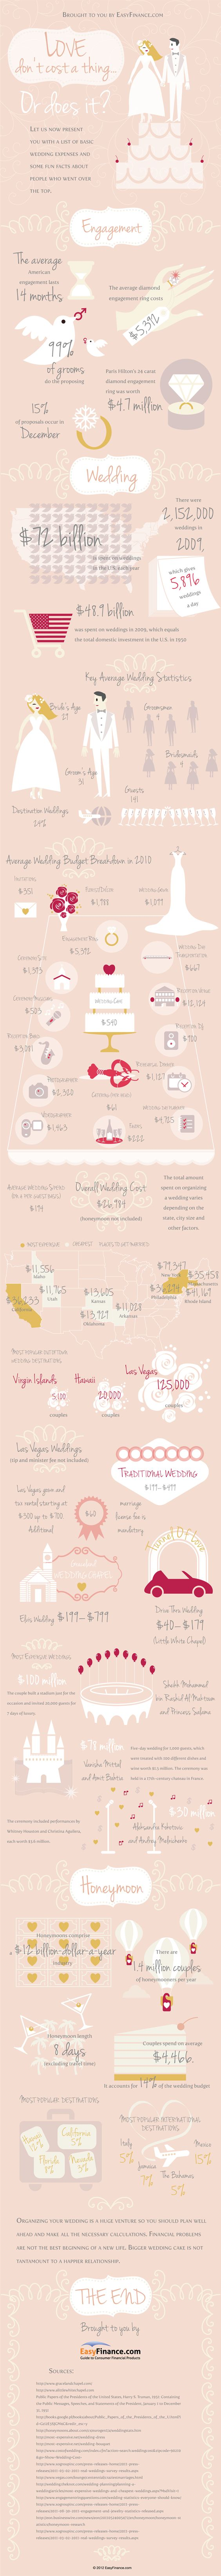 Wedding Budget Infographic